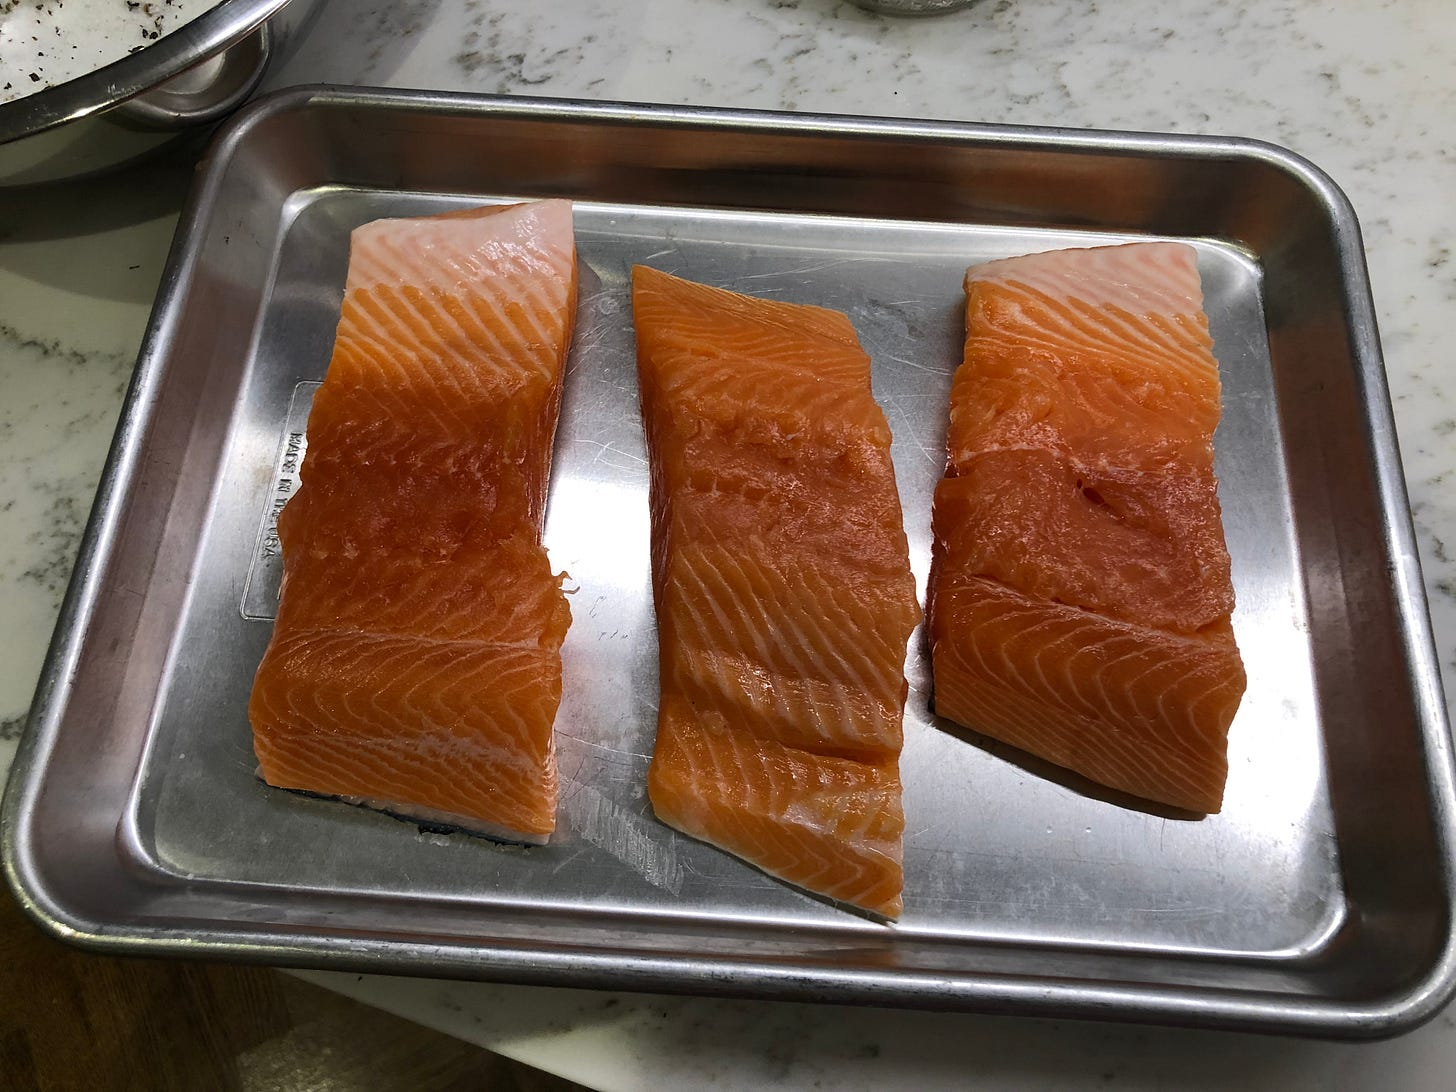 Three pieces of salmon on a metal tray